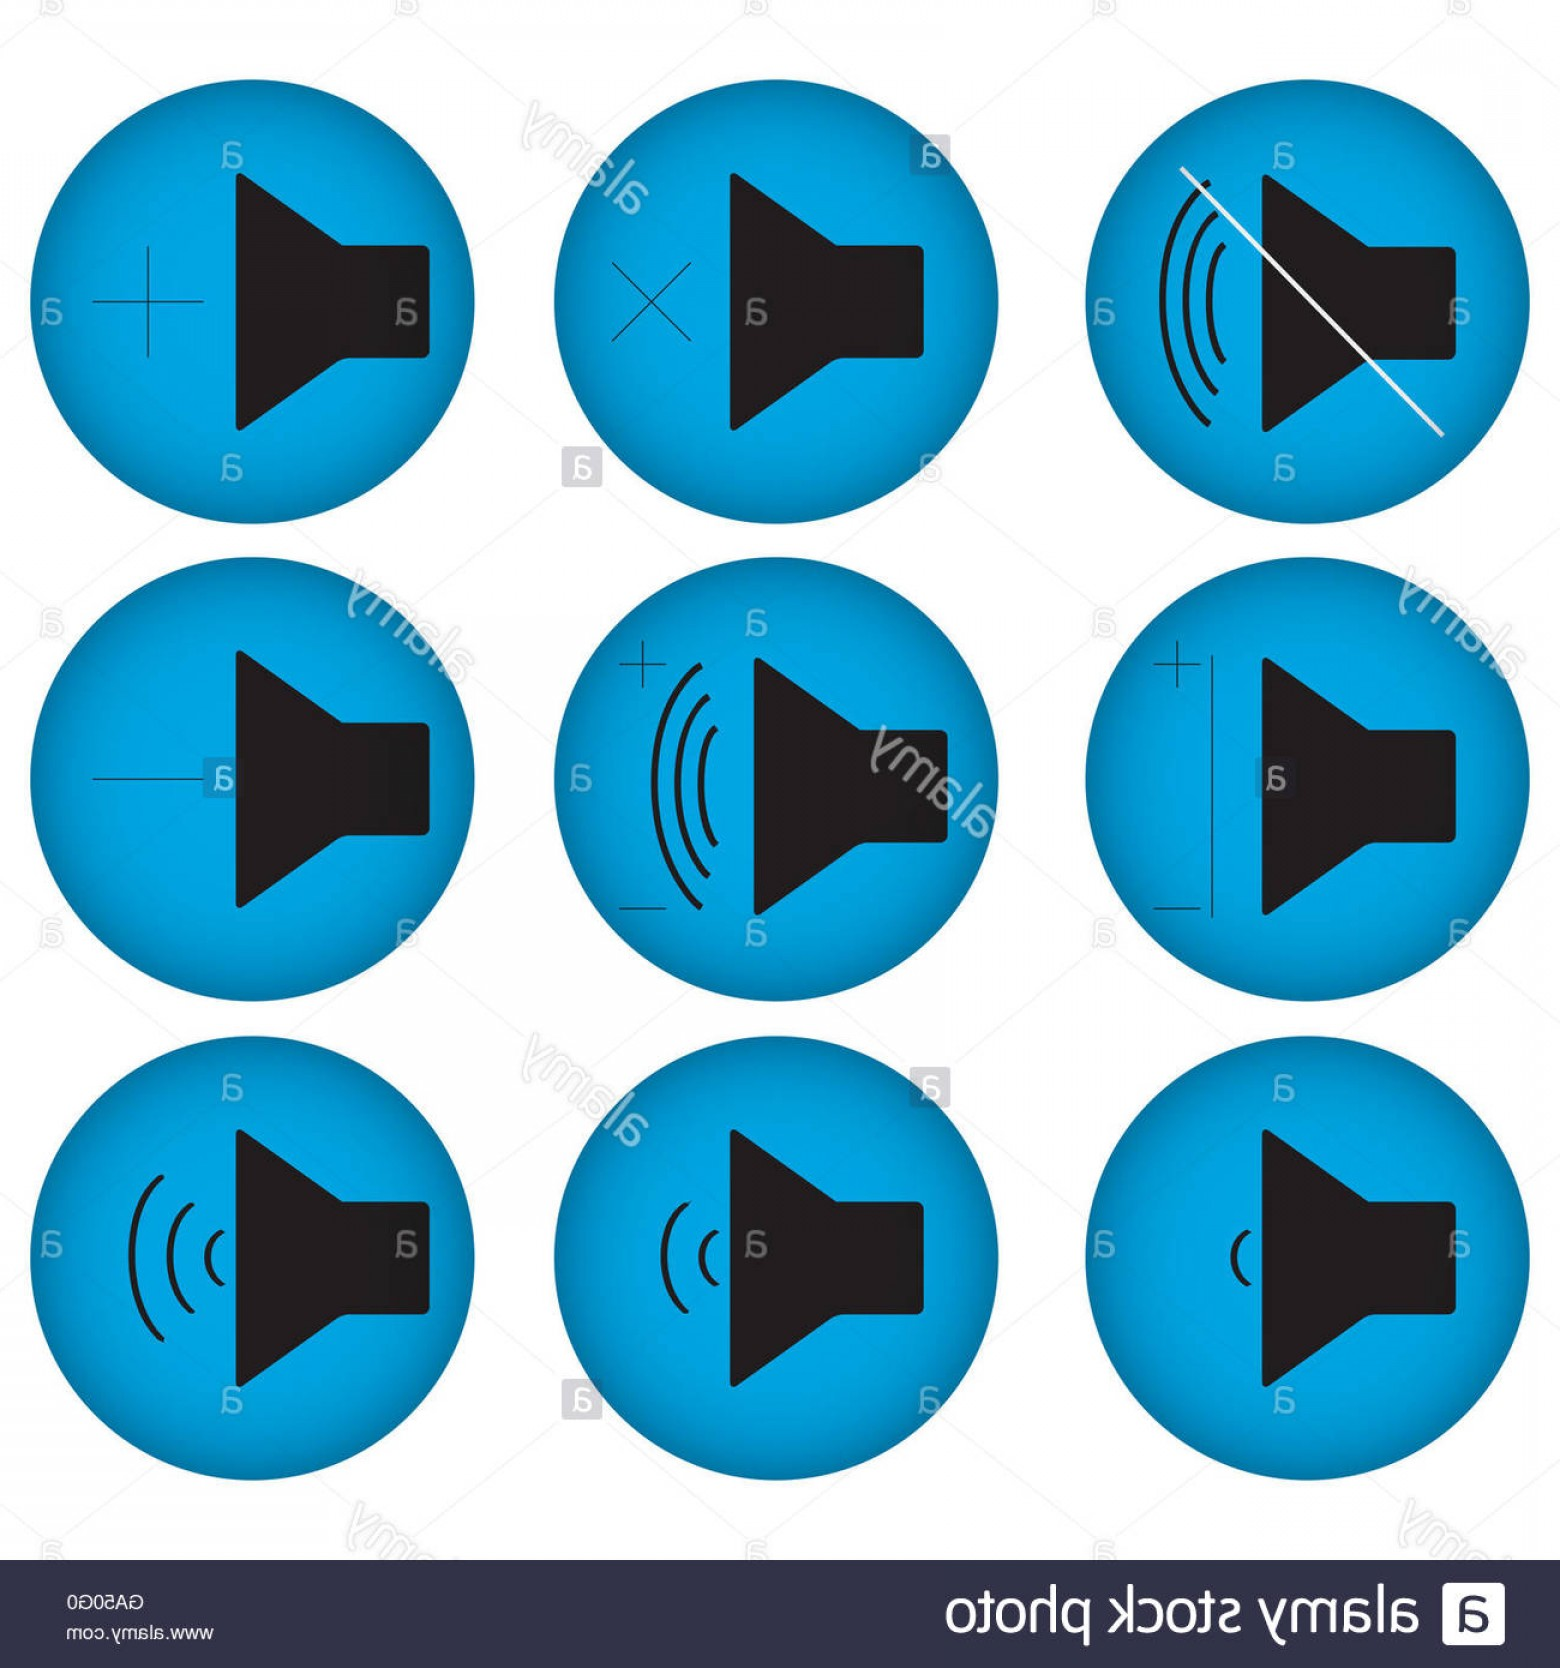 Volume Button Vector: Stock Photo Controls Sound Set Flat Round Sound Icon And Volume Button Vector